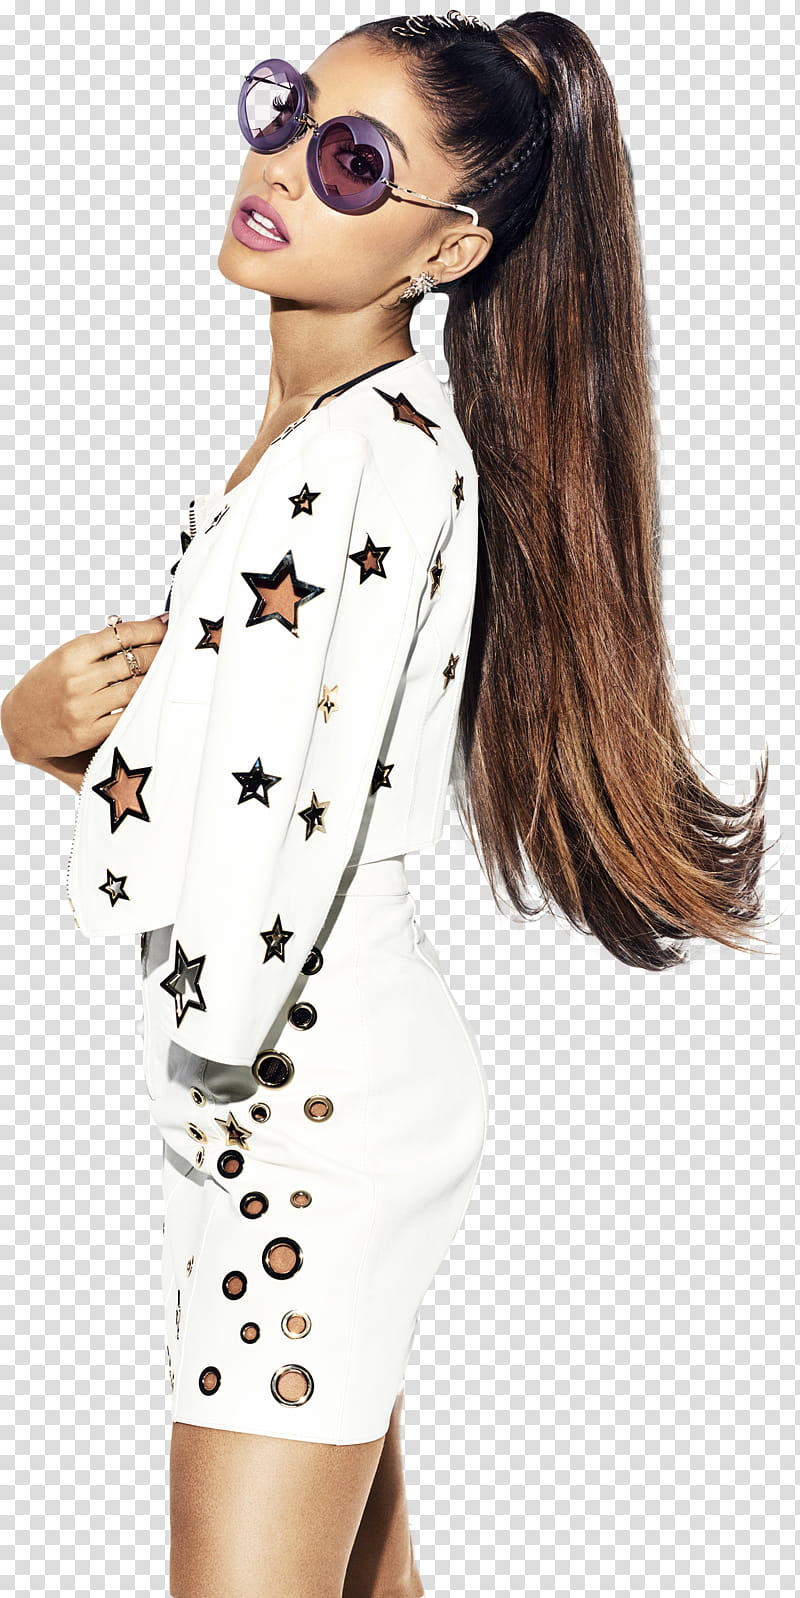 Ft Ariana Grande transparent background PNG clipart.